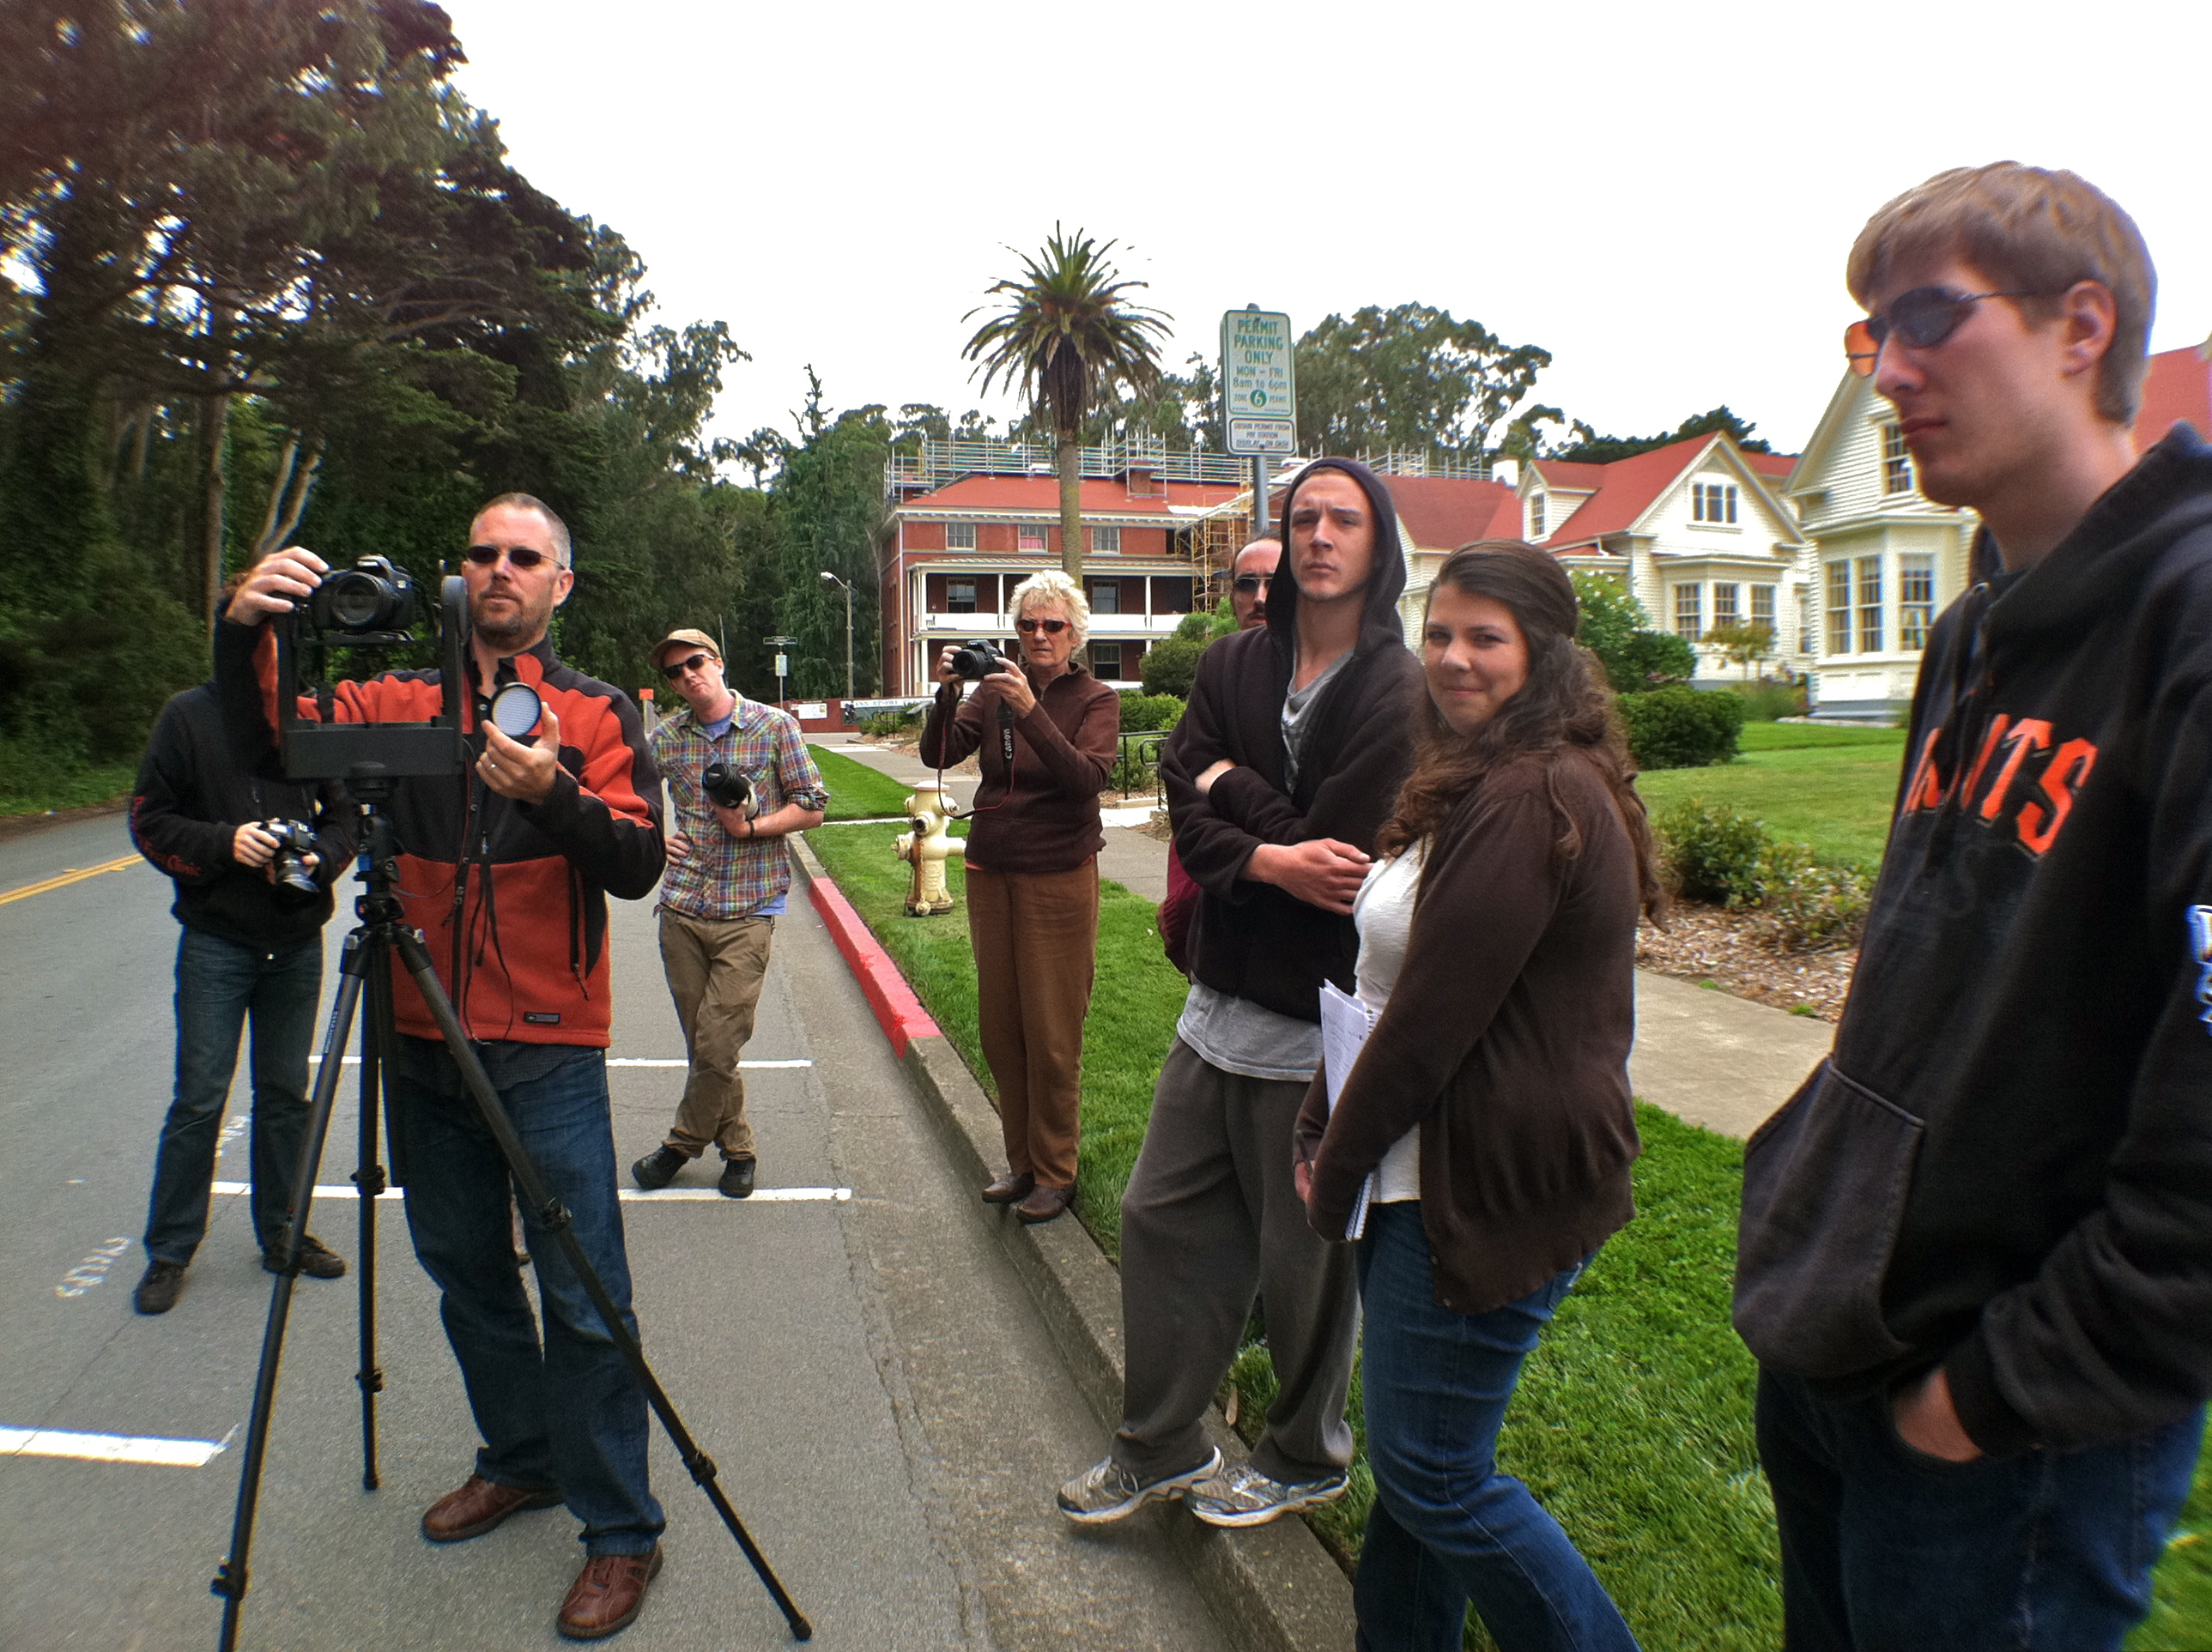 Instructors and students shooting a gigapan panorama in the SF Presidio Park  - ©2011 Center for Digital Archaeology, Berkeley CA. Creative Commons creativecommons.org/licenses/by-nc/3.0/